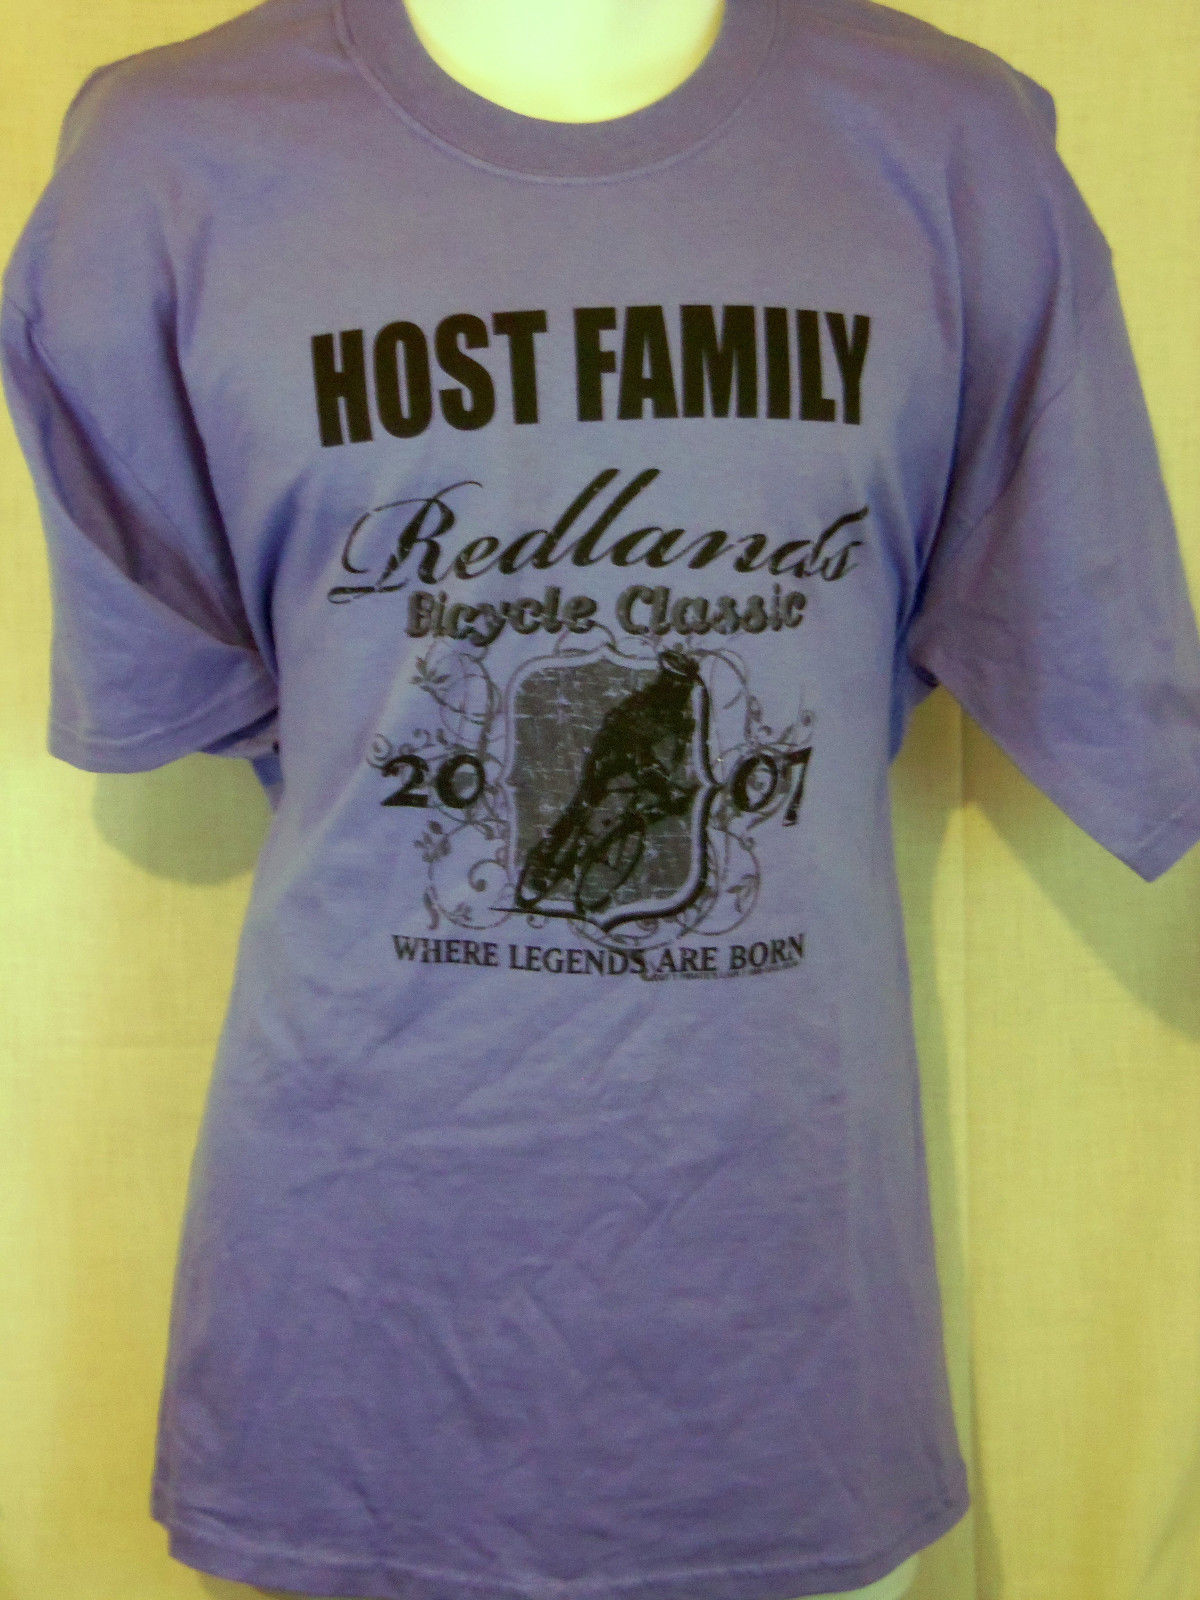 Redlands Bicycle Classic T shirt Mens Host Family Blue Graphic Cotton 2018 Newest Fashion